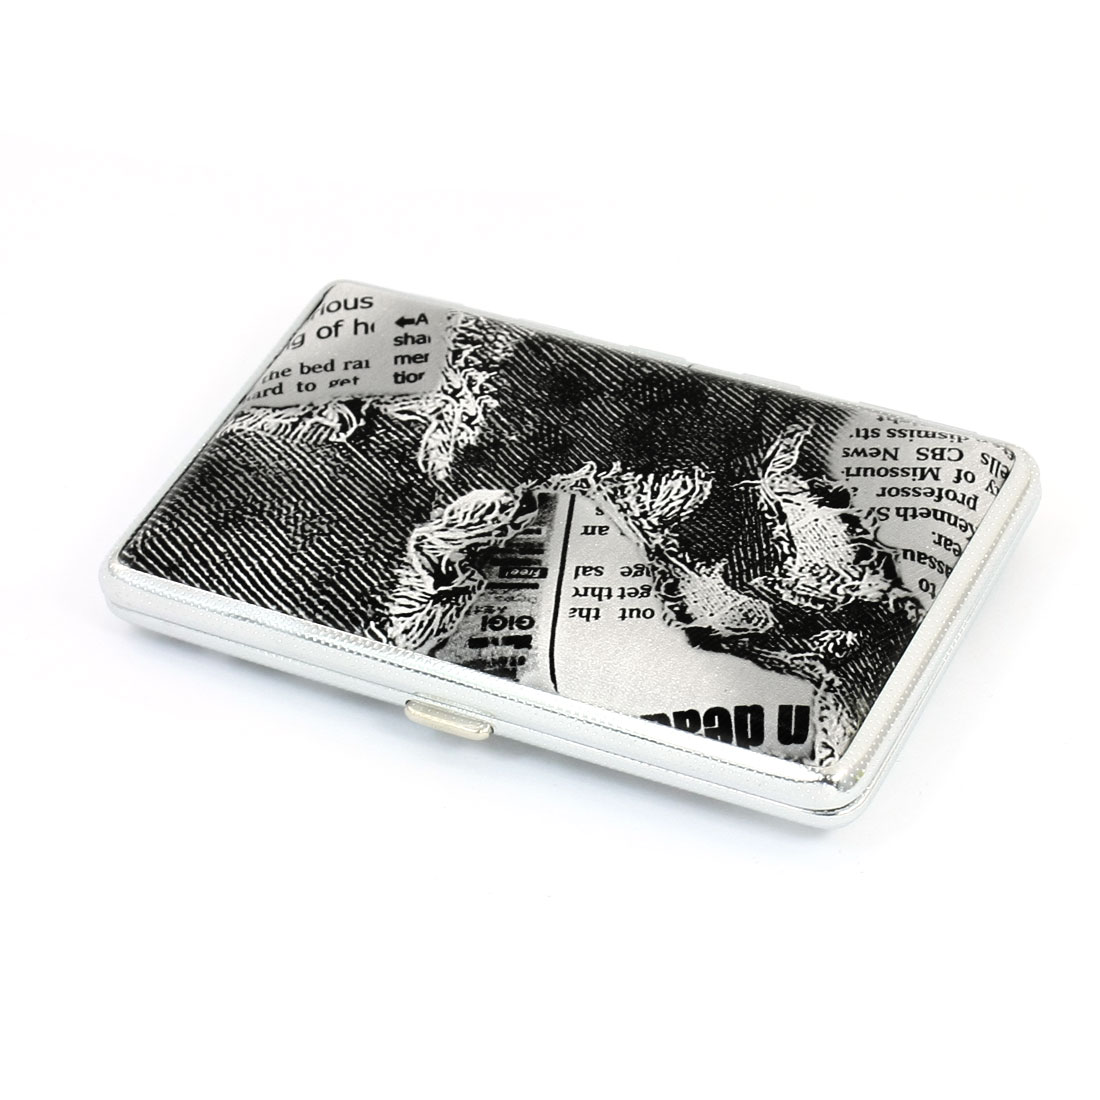 Black White Rectangular Jeans Pattern Faux Leather Coated Two Sides Hinge Closure Metal Case Box Holder Container for 14pcs Cigarette